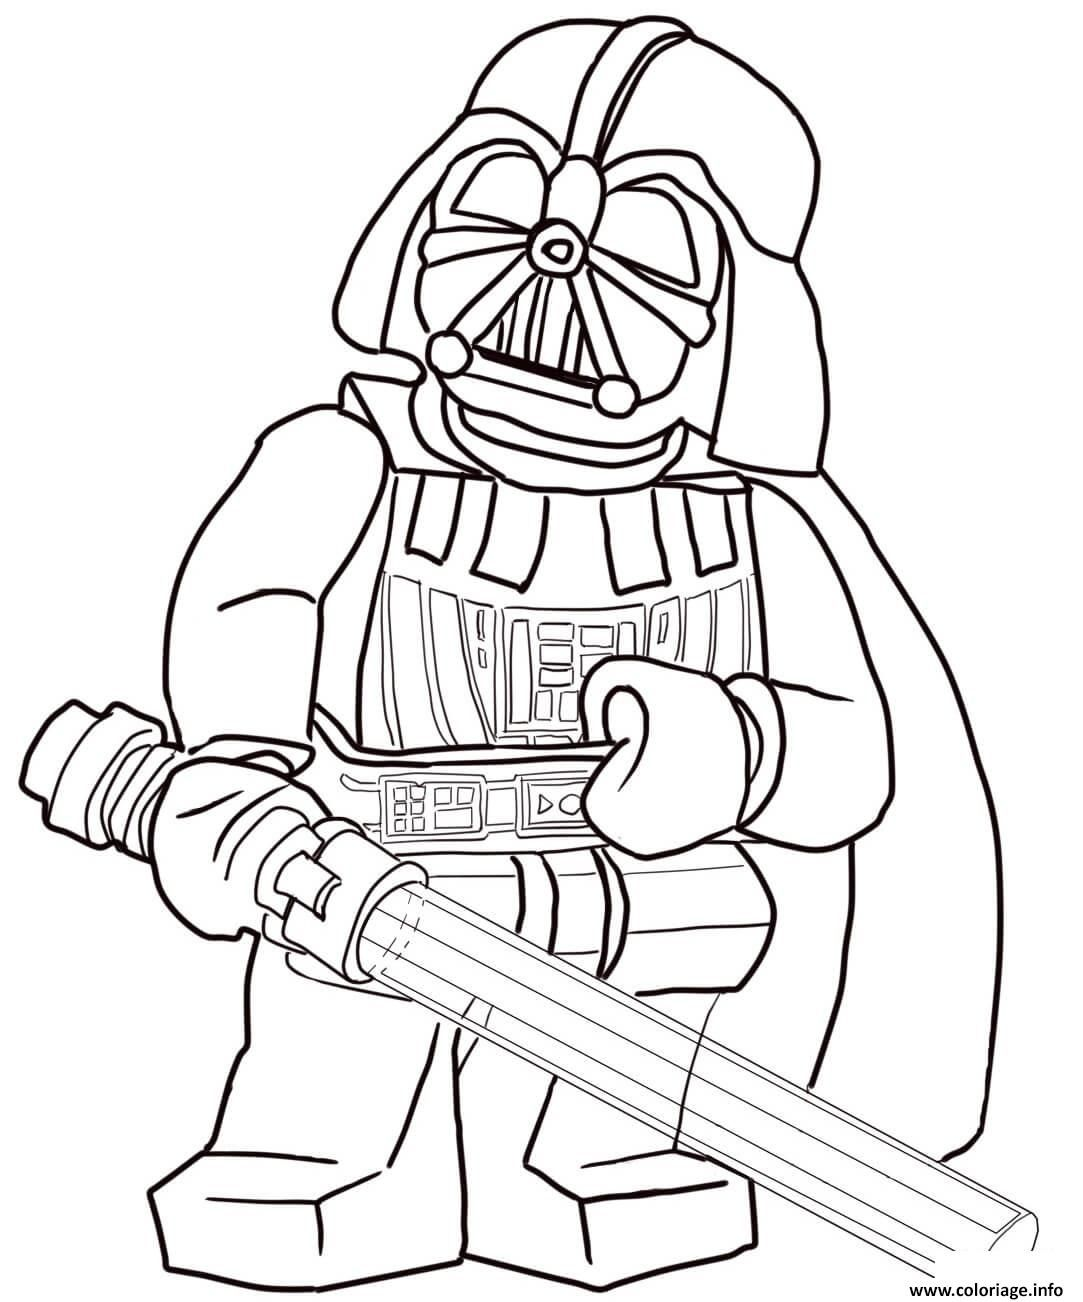 Coloriage Lego Star Wars 3 Movie Dessin Dedans Star Wars Dessin A